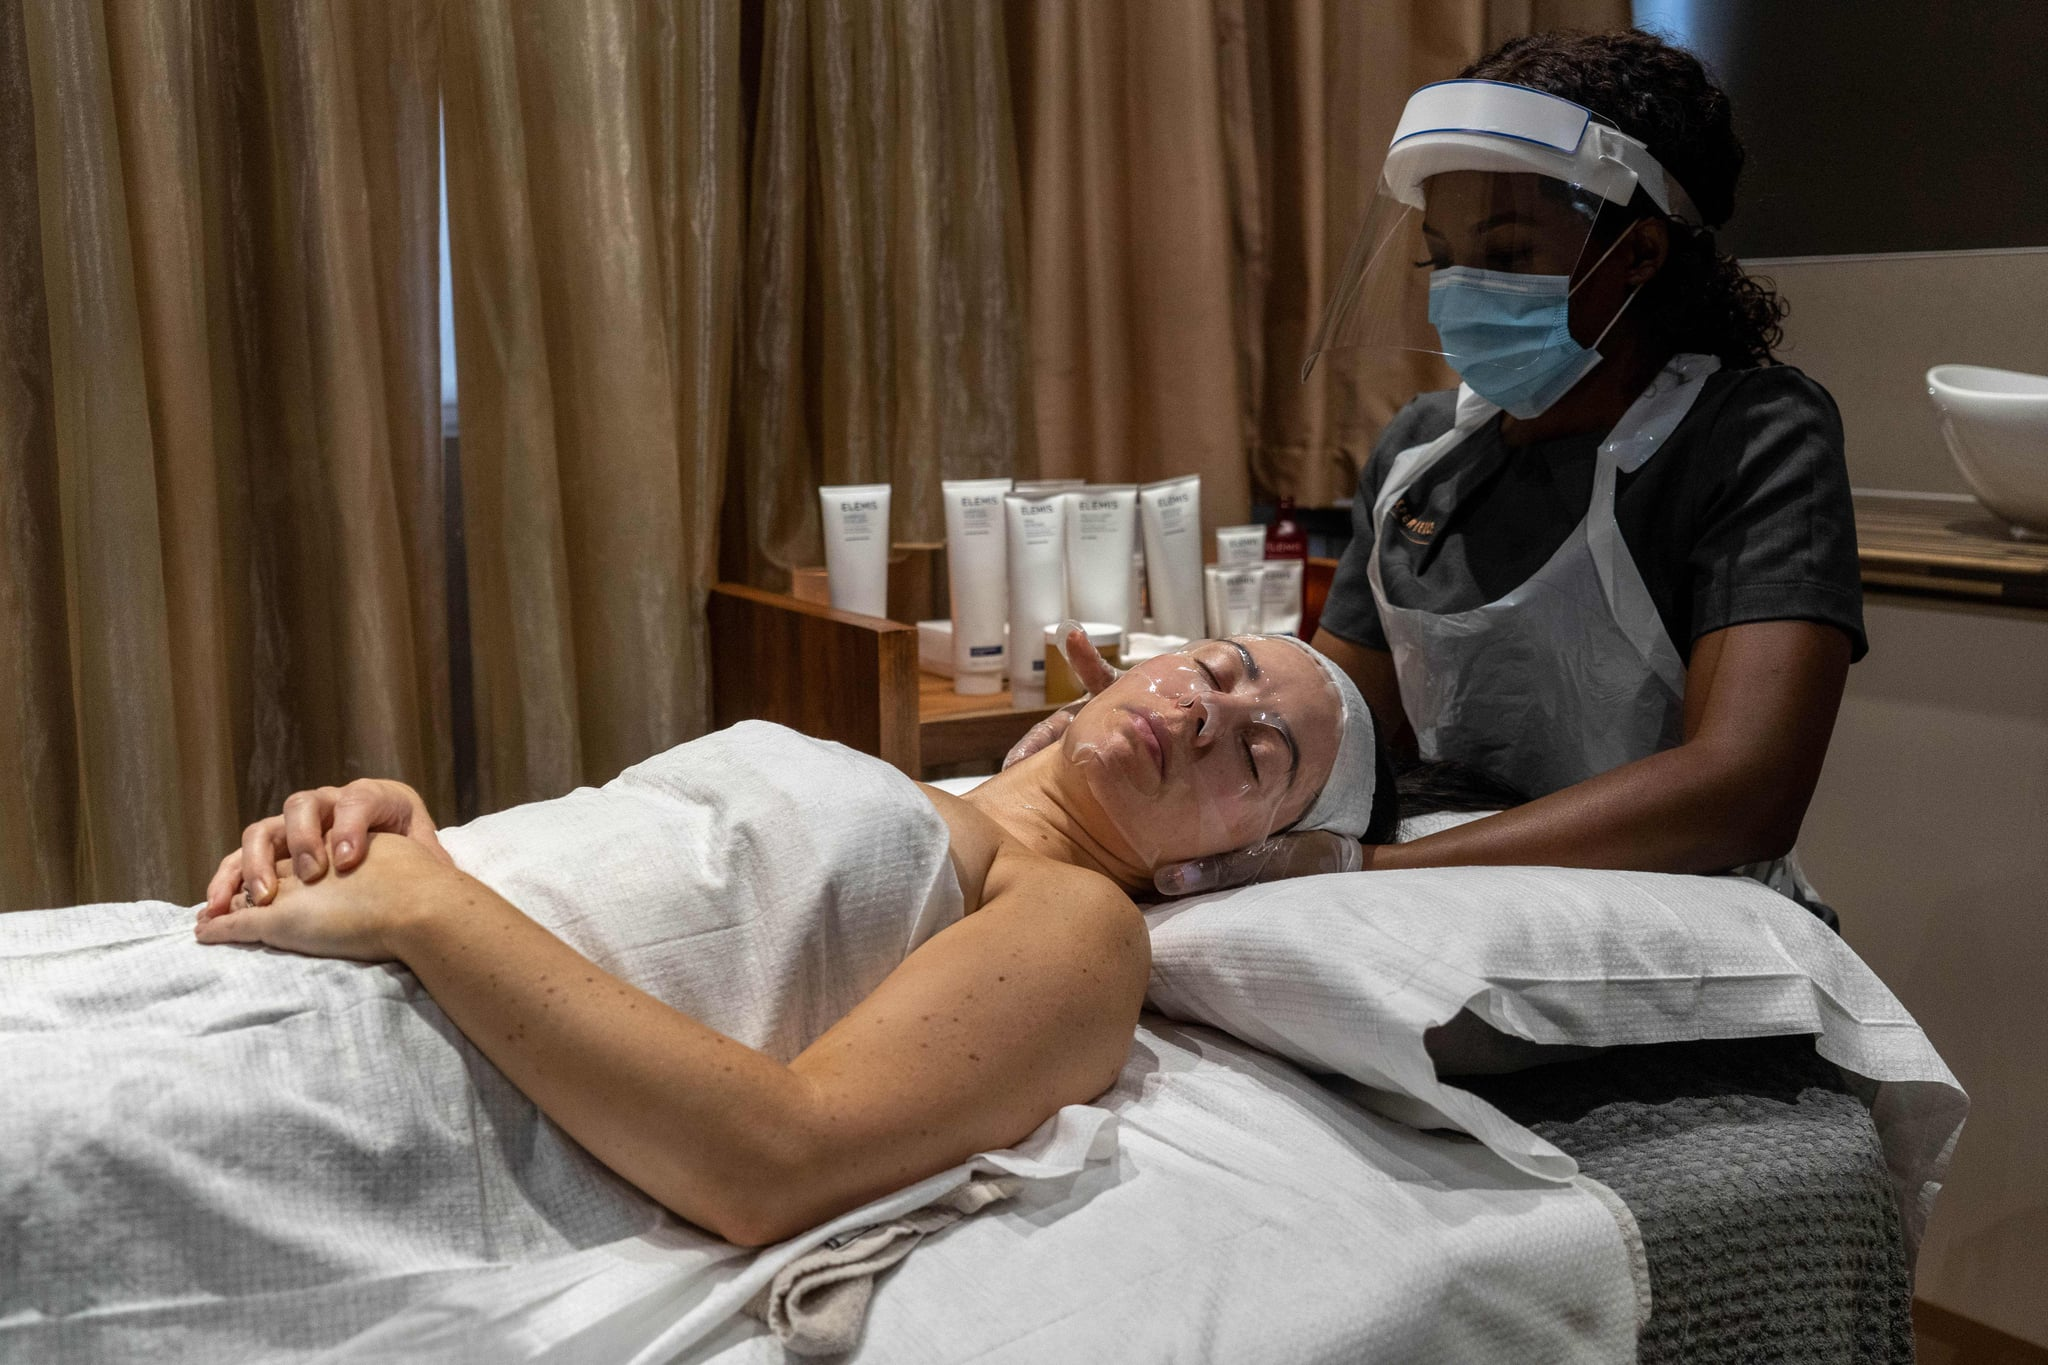 TOPSHOT - Wearing full PPE (personal protective equipment), Theresa Shangazhike, manager of the Spa Experience Wimbledon, gives her client, Lauren Shine a facial treatment in Wimbledon, south London on August 15, 2020, as beauty salons, spas and hairdressers relax the regulations to combat the coronavirus, now offering additional services, including front-of-face treatments. (Photo by Niklas HALLE'N / AFP) (Photo by NIKLAS HALLE'N/AFP via Getty Images)